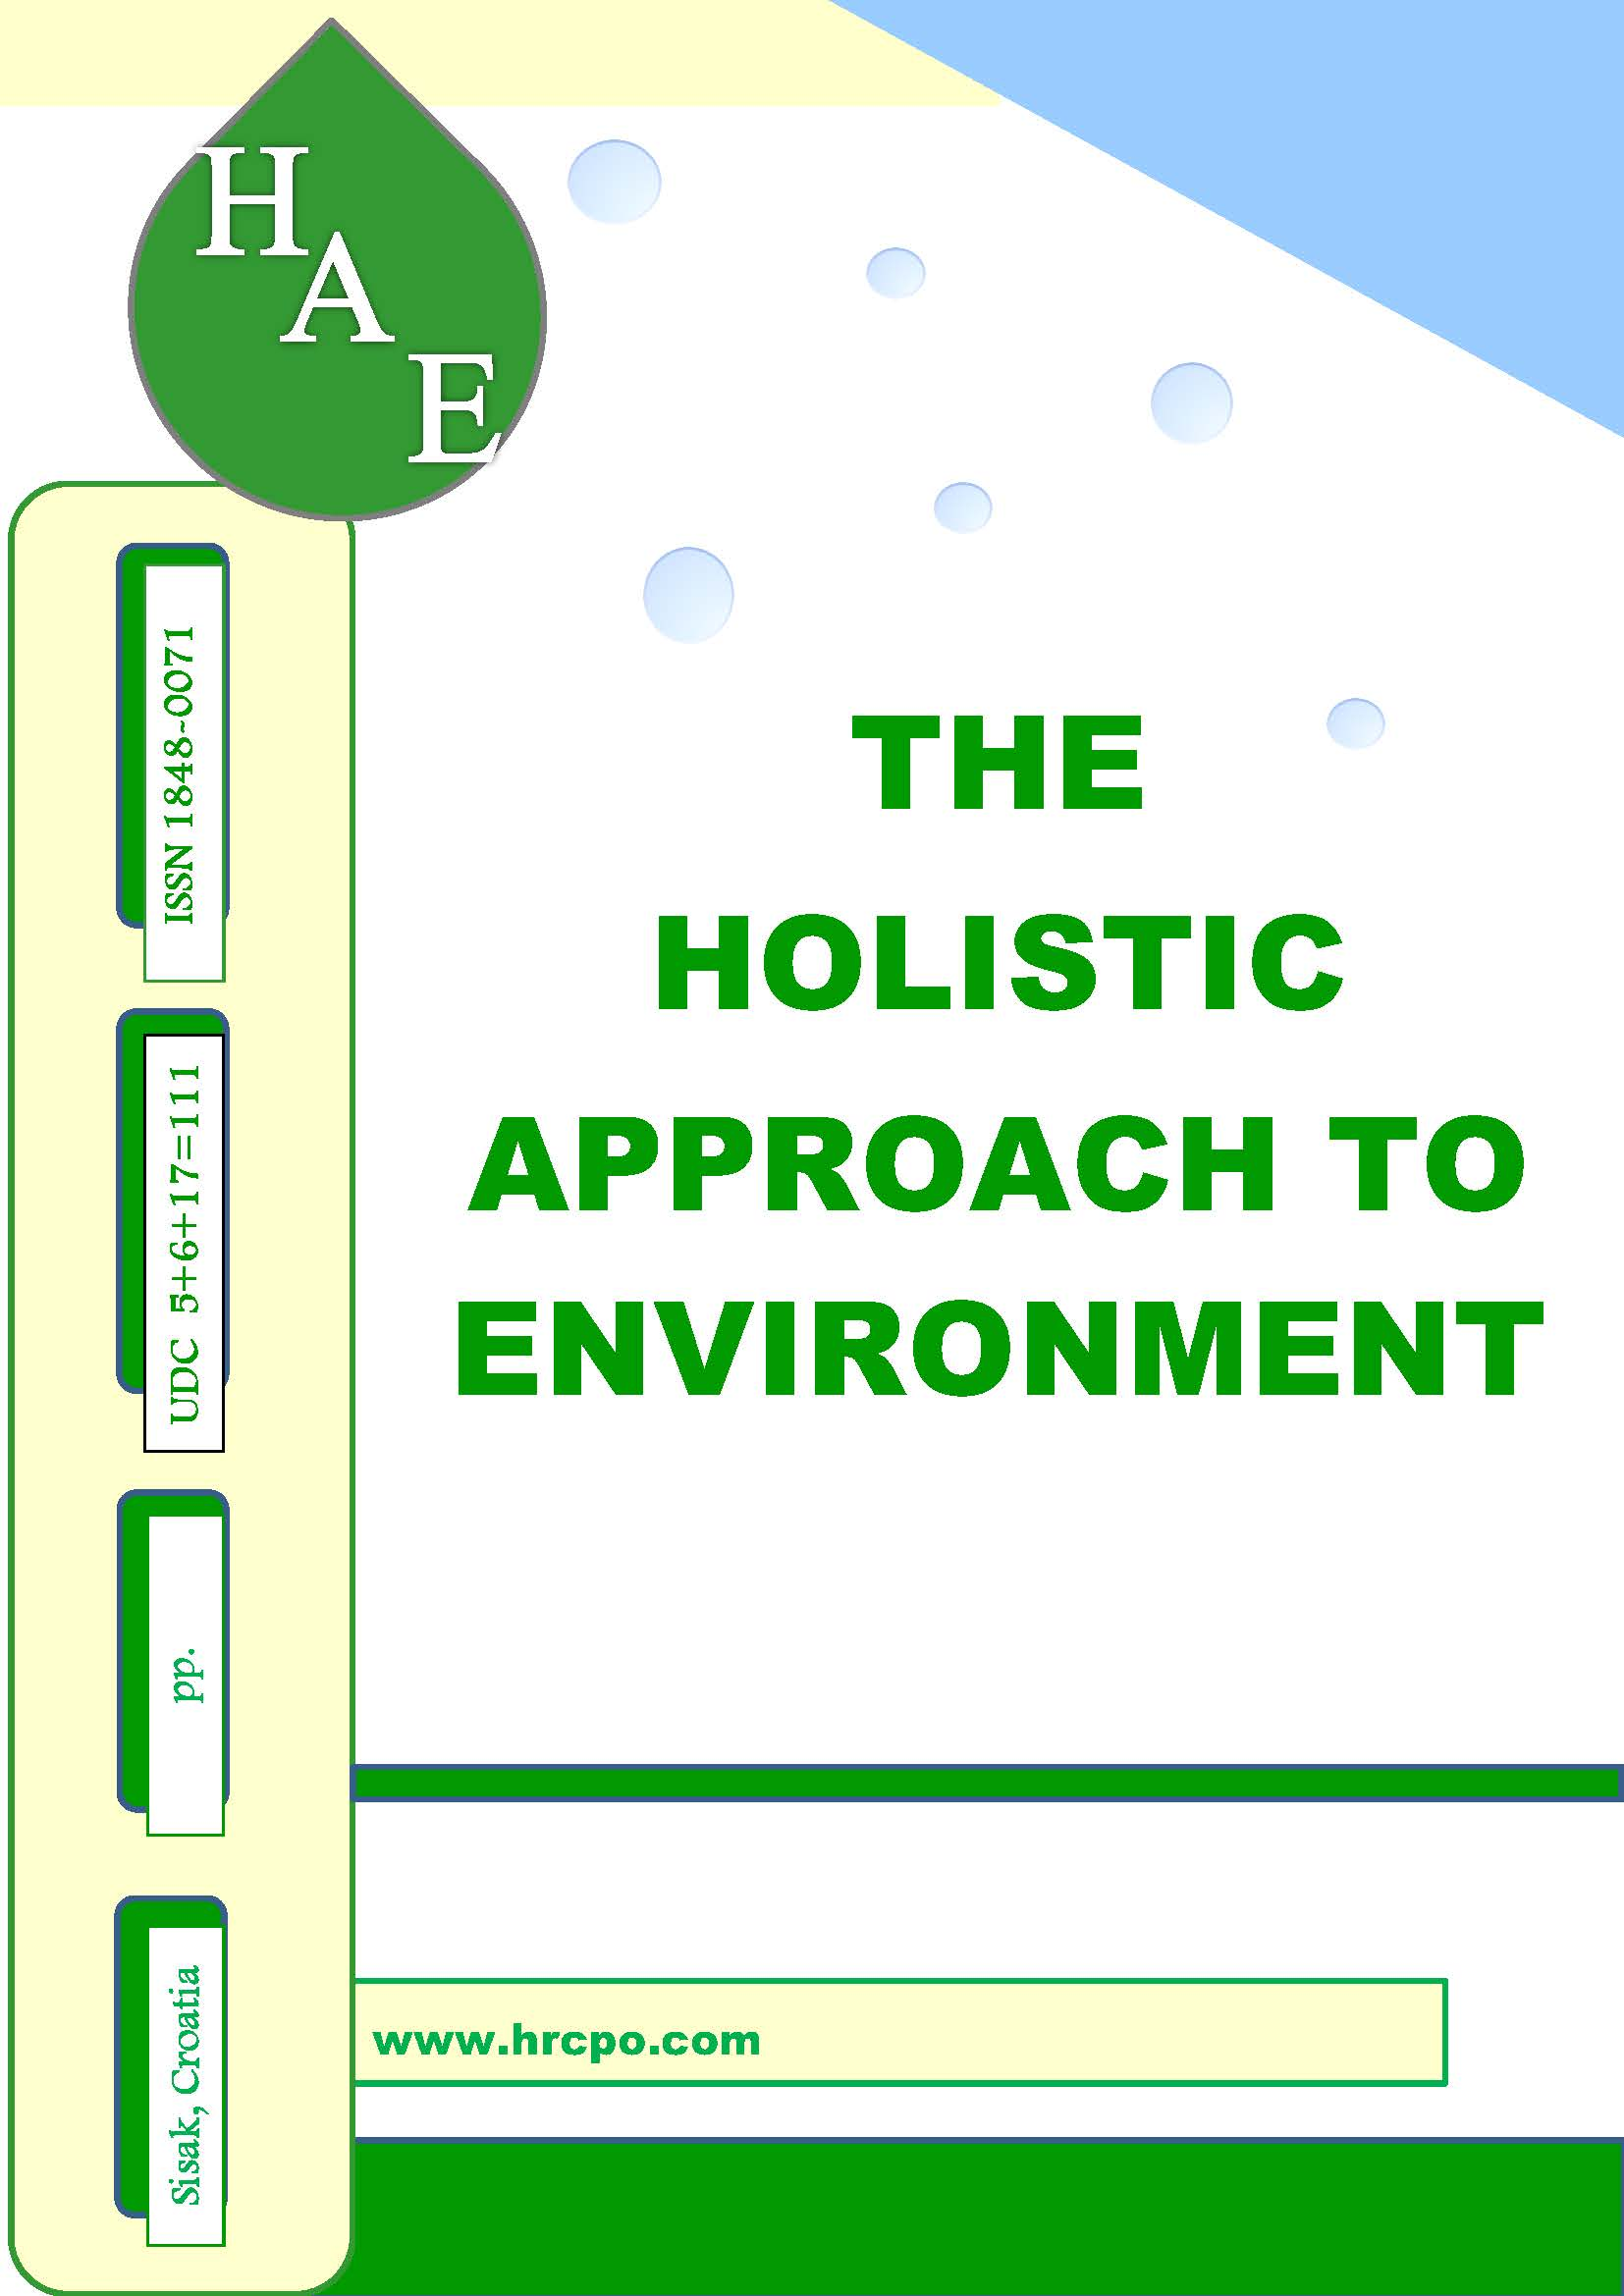 The holistic approach to environment